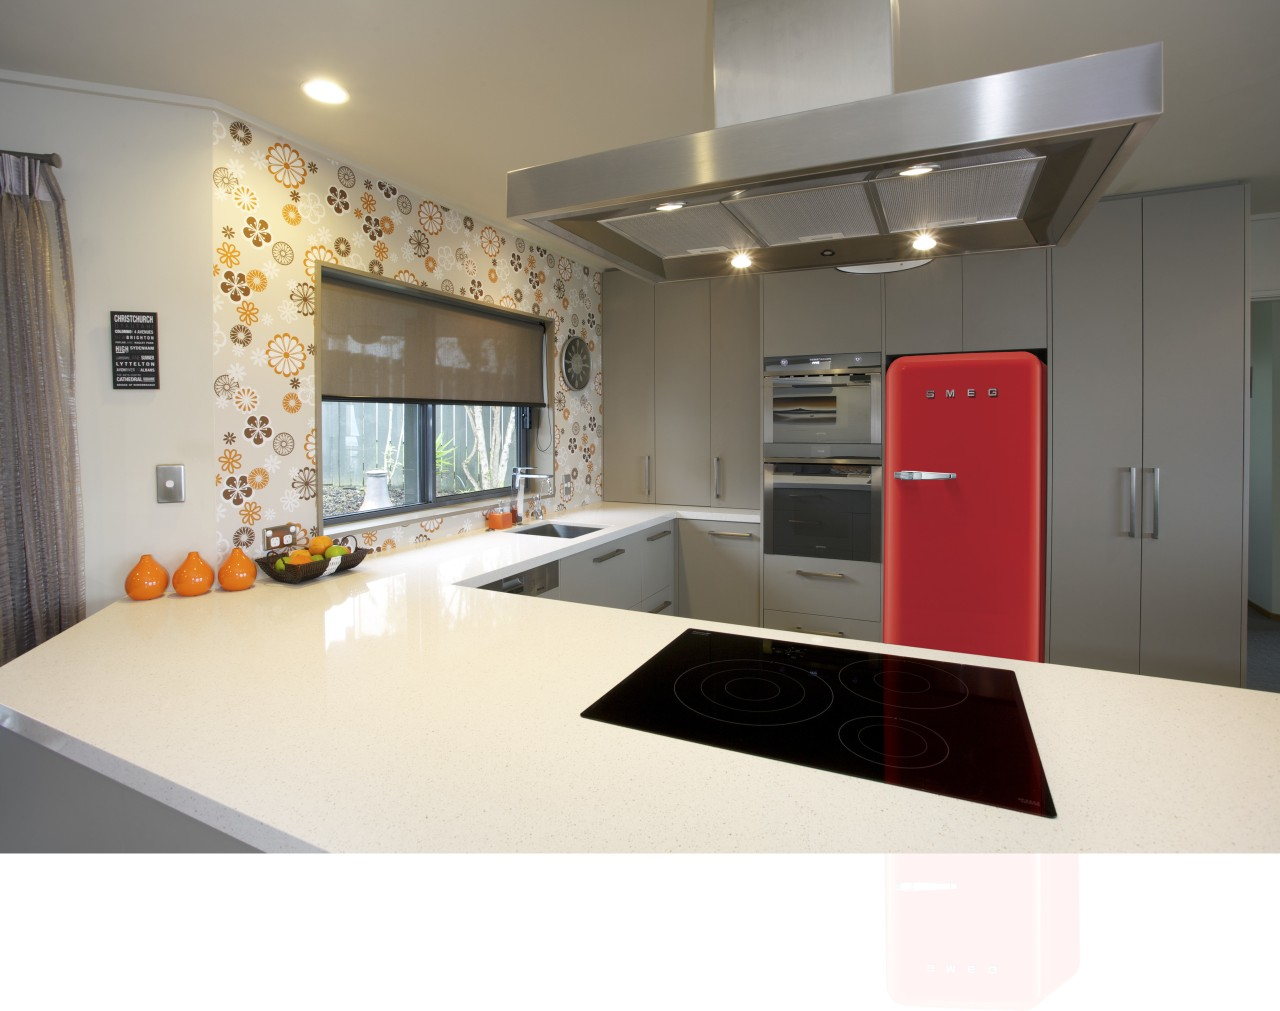 This new kitchen designed by Colleen Holder features countertop, interior design, kitchen, real estate, white, gray